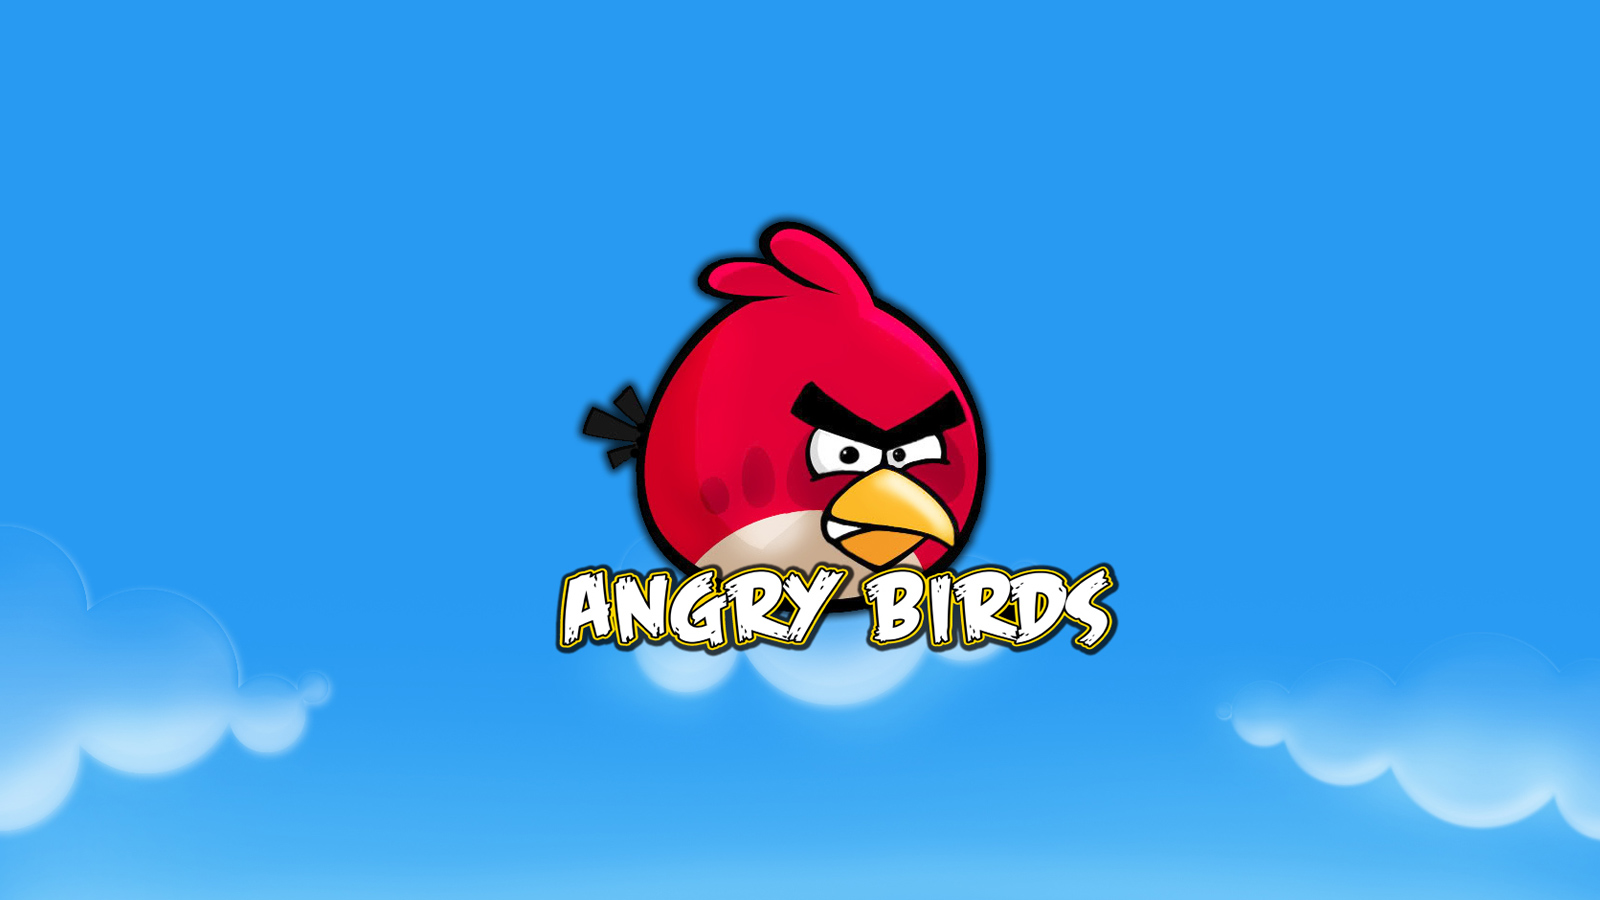 Angry Birds Wallpaper 1600x900 48294